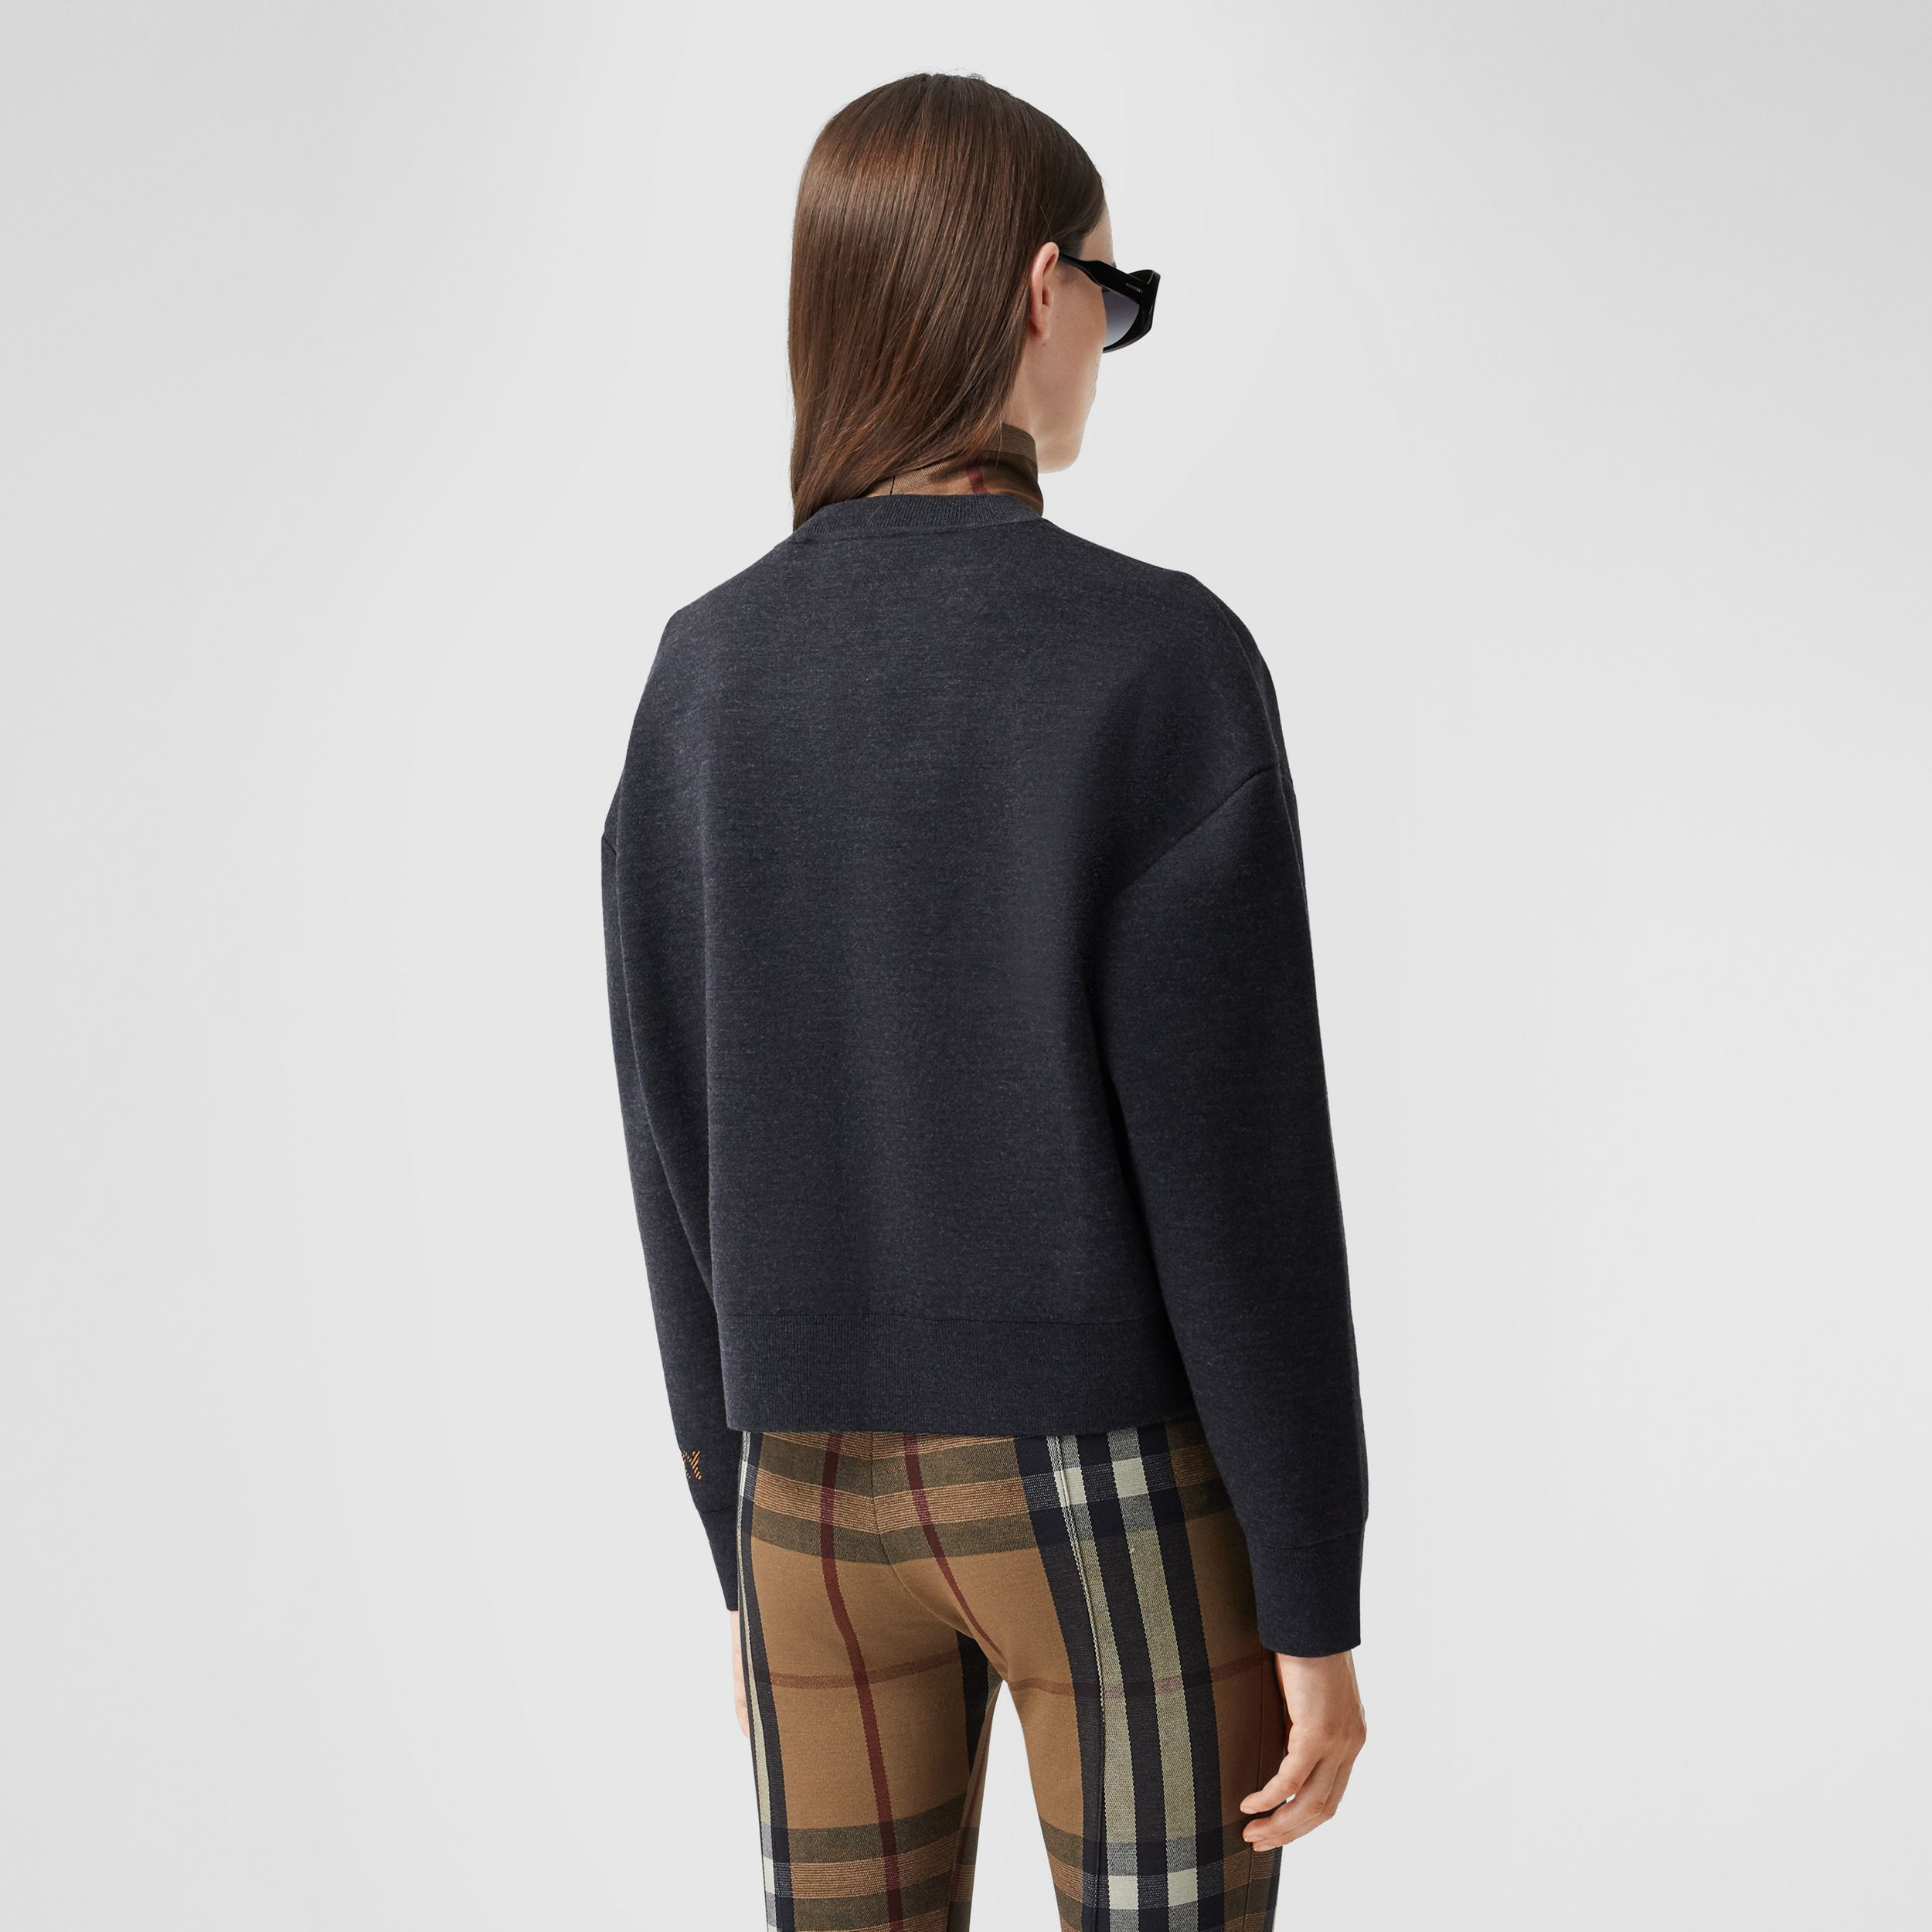 Logo Technical Merino Wool Jacquard Sweater in Charcoal Melange - Women | Burberry Hong Kong S.A.R. - 3